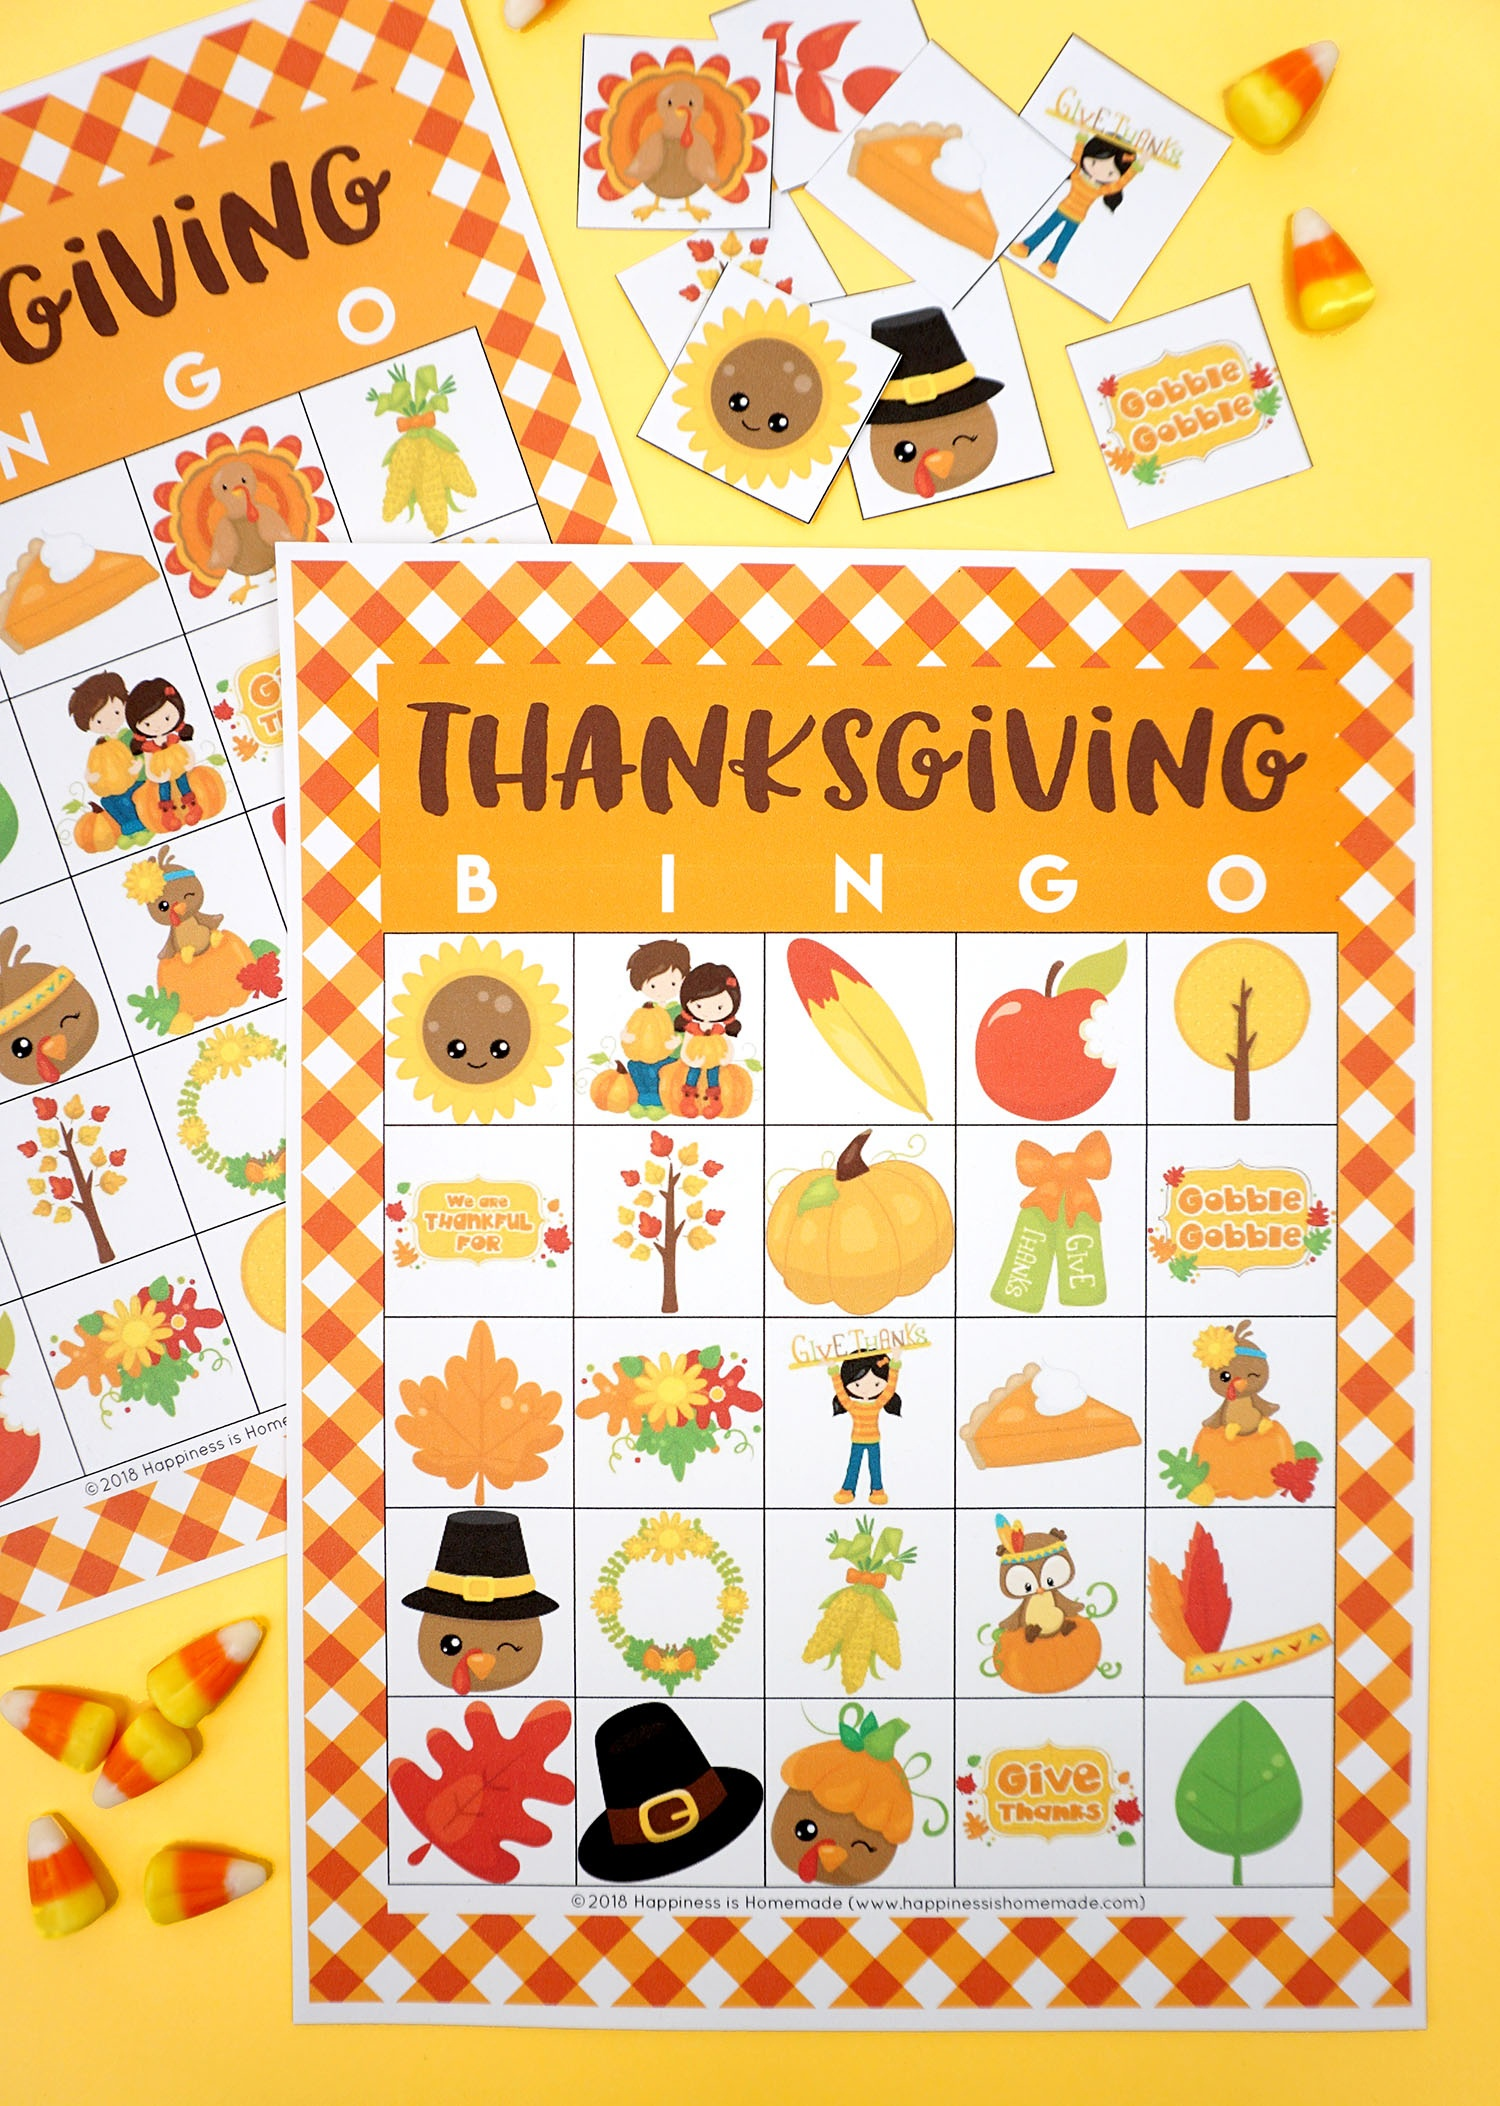 Free Printable Thanksgiving Bingo Cards - Happiness Is Homemade - Free Printable Thanksgiving Cards